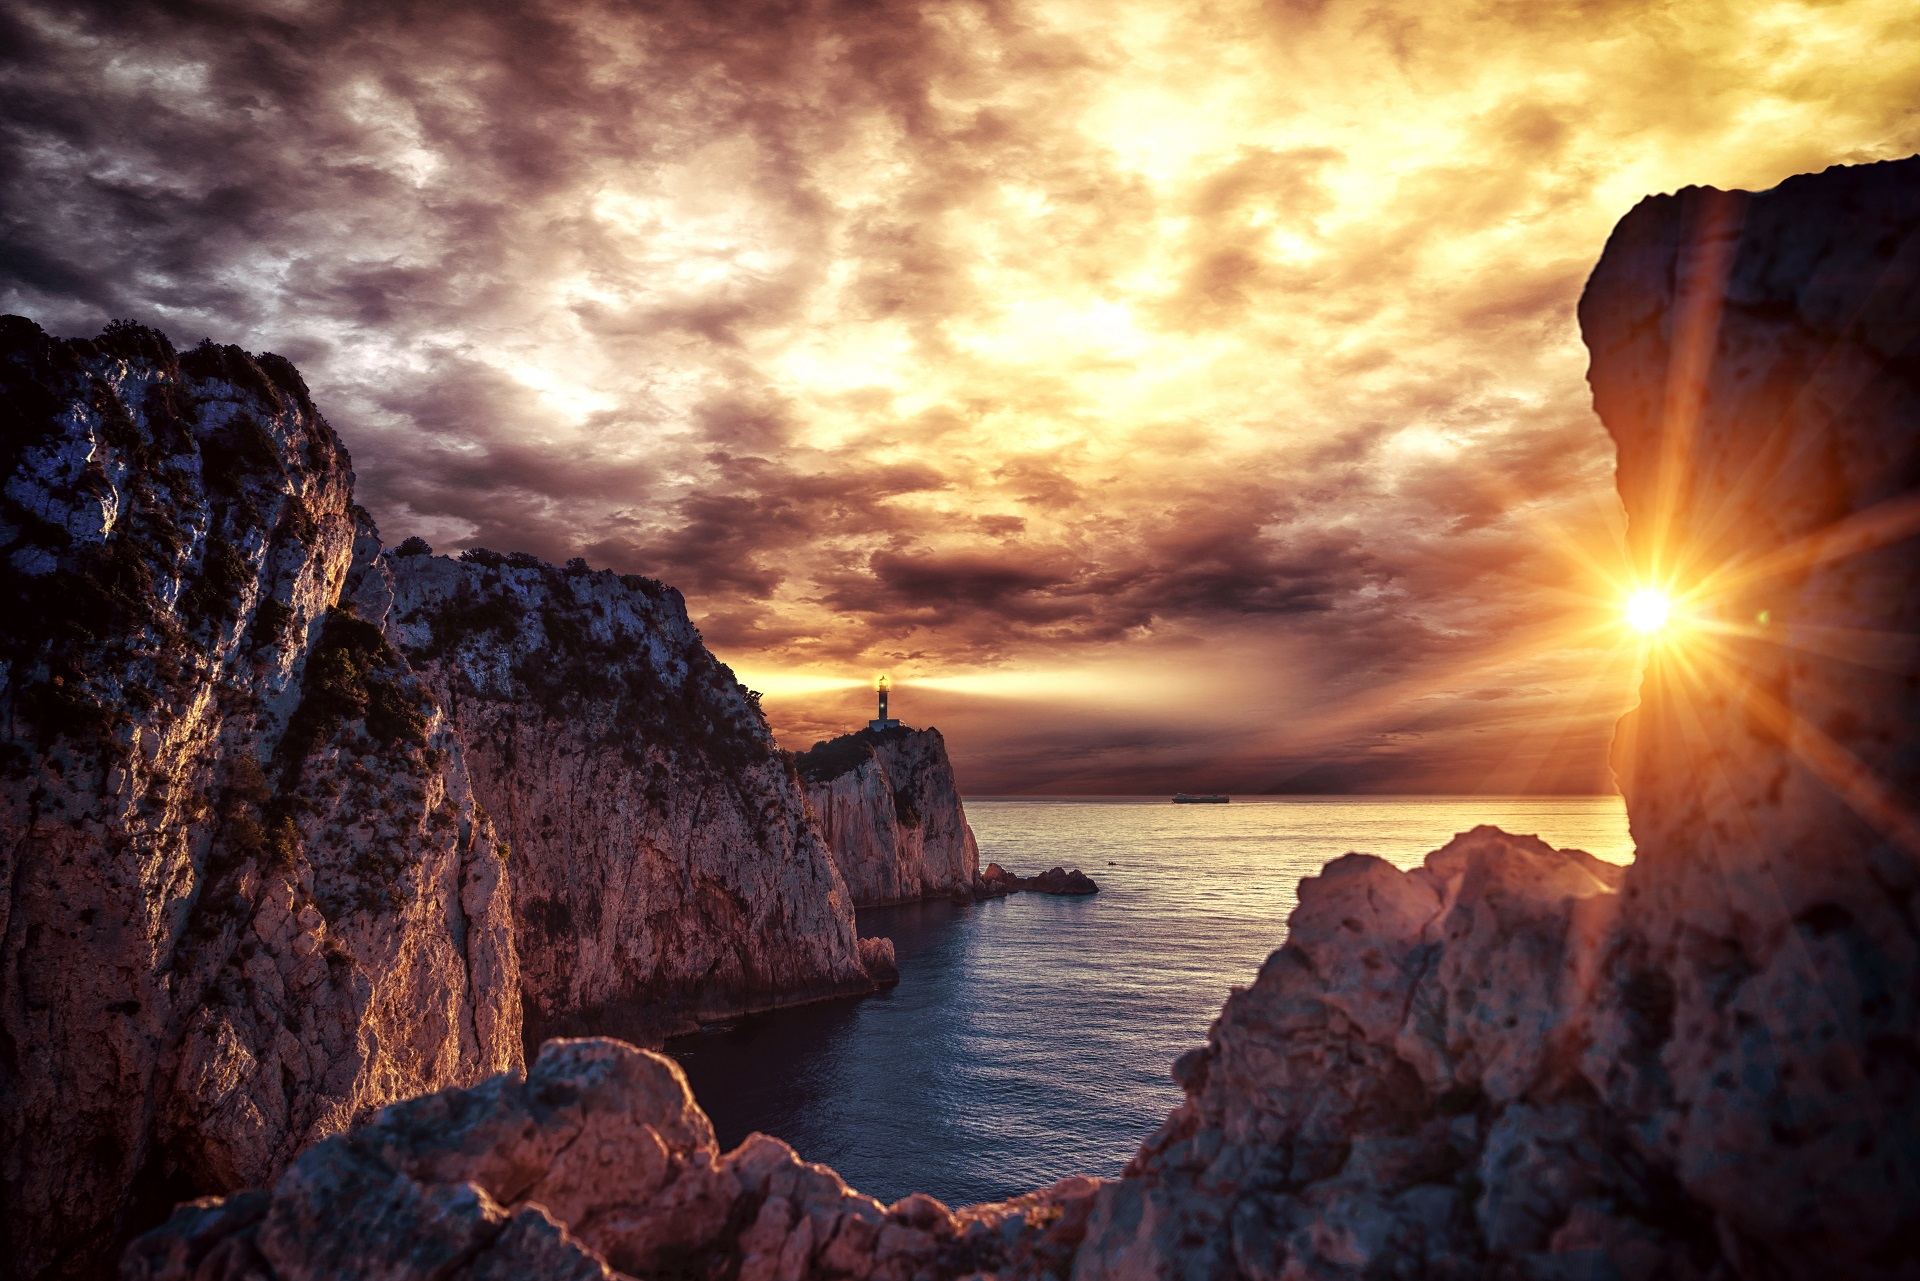 Lighthouse at sunset in Lefkada